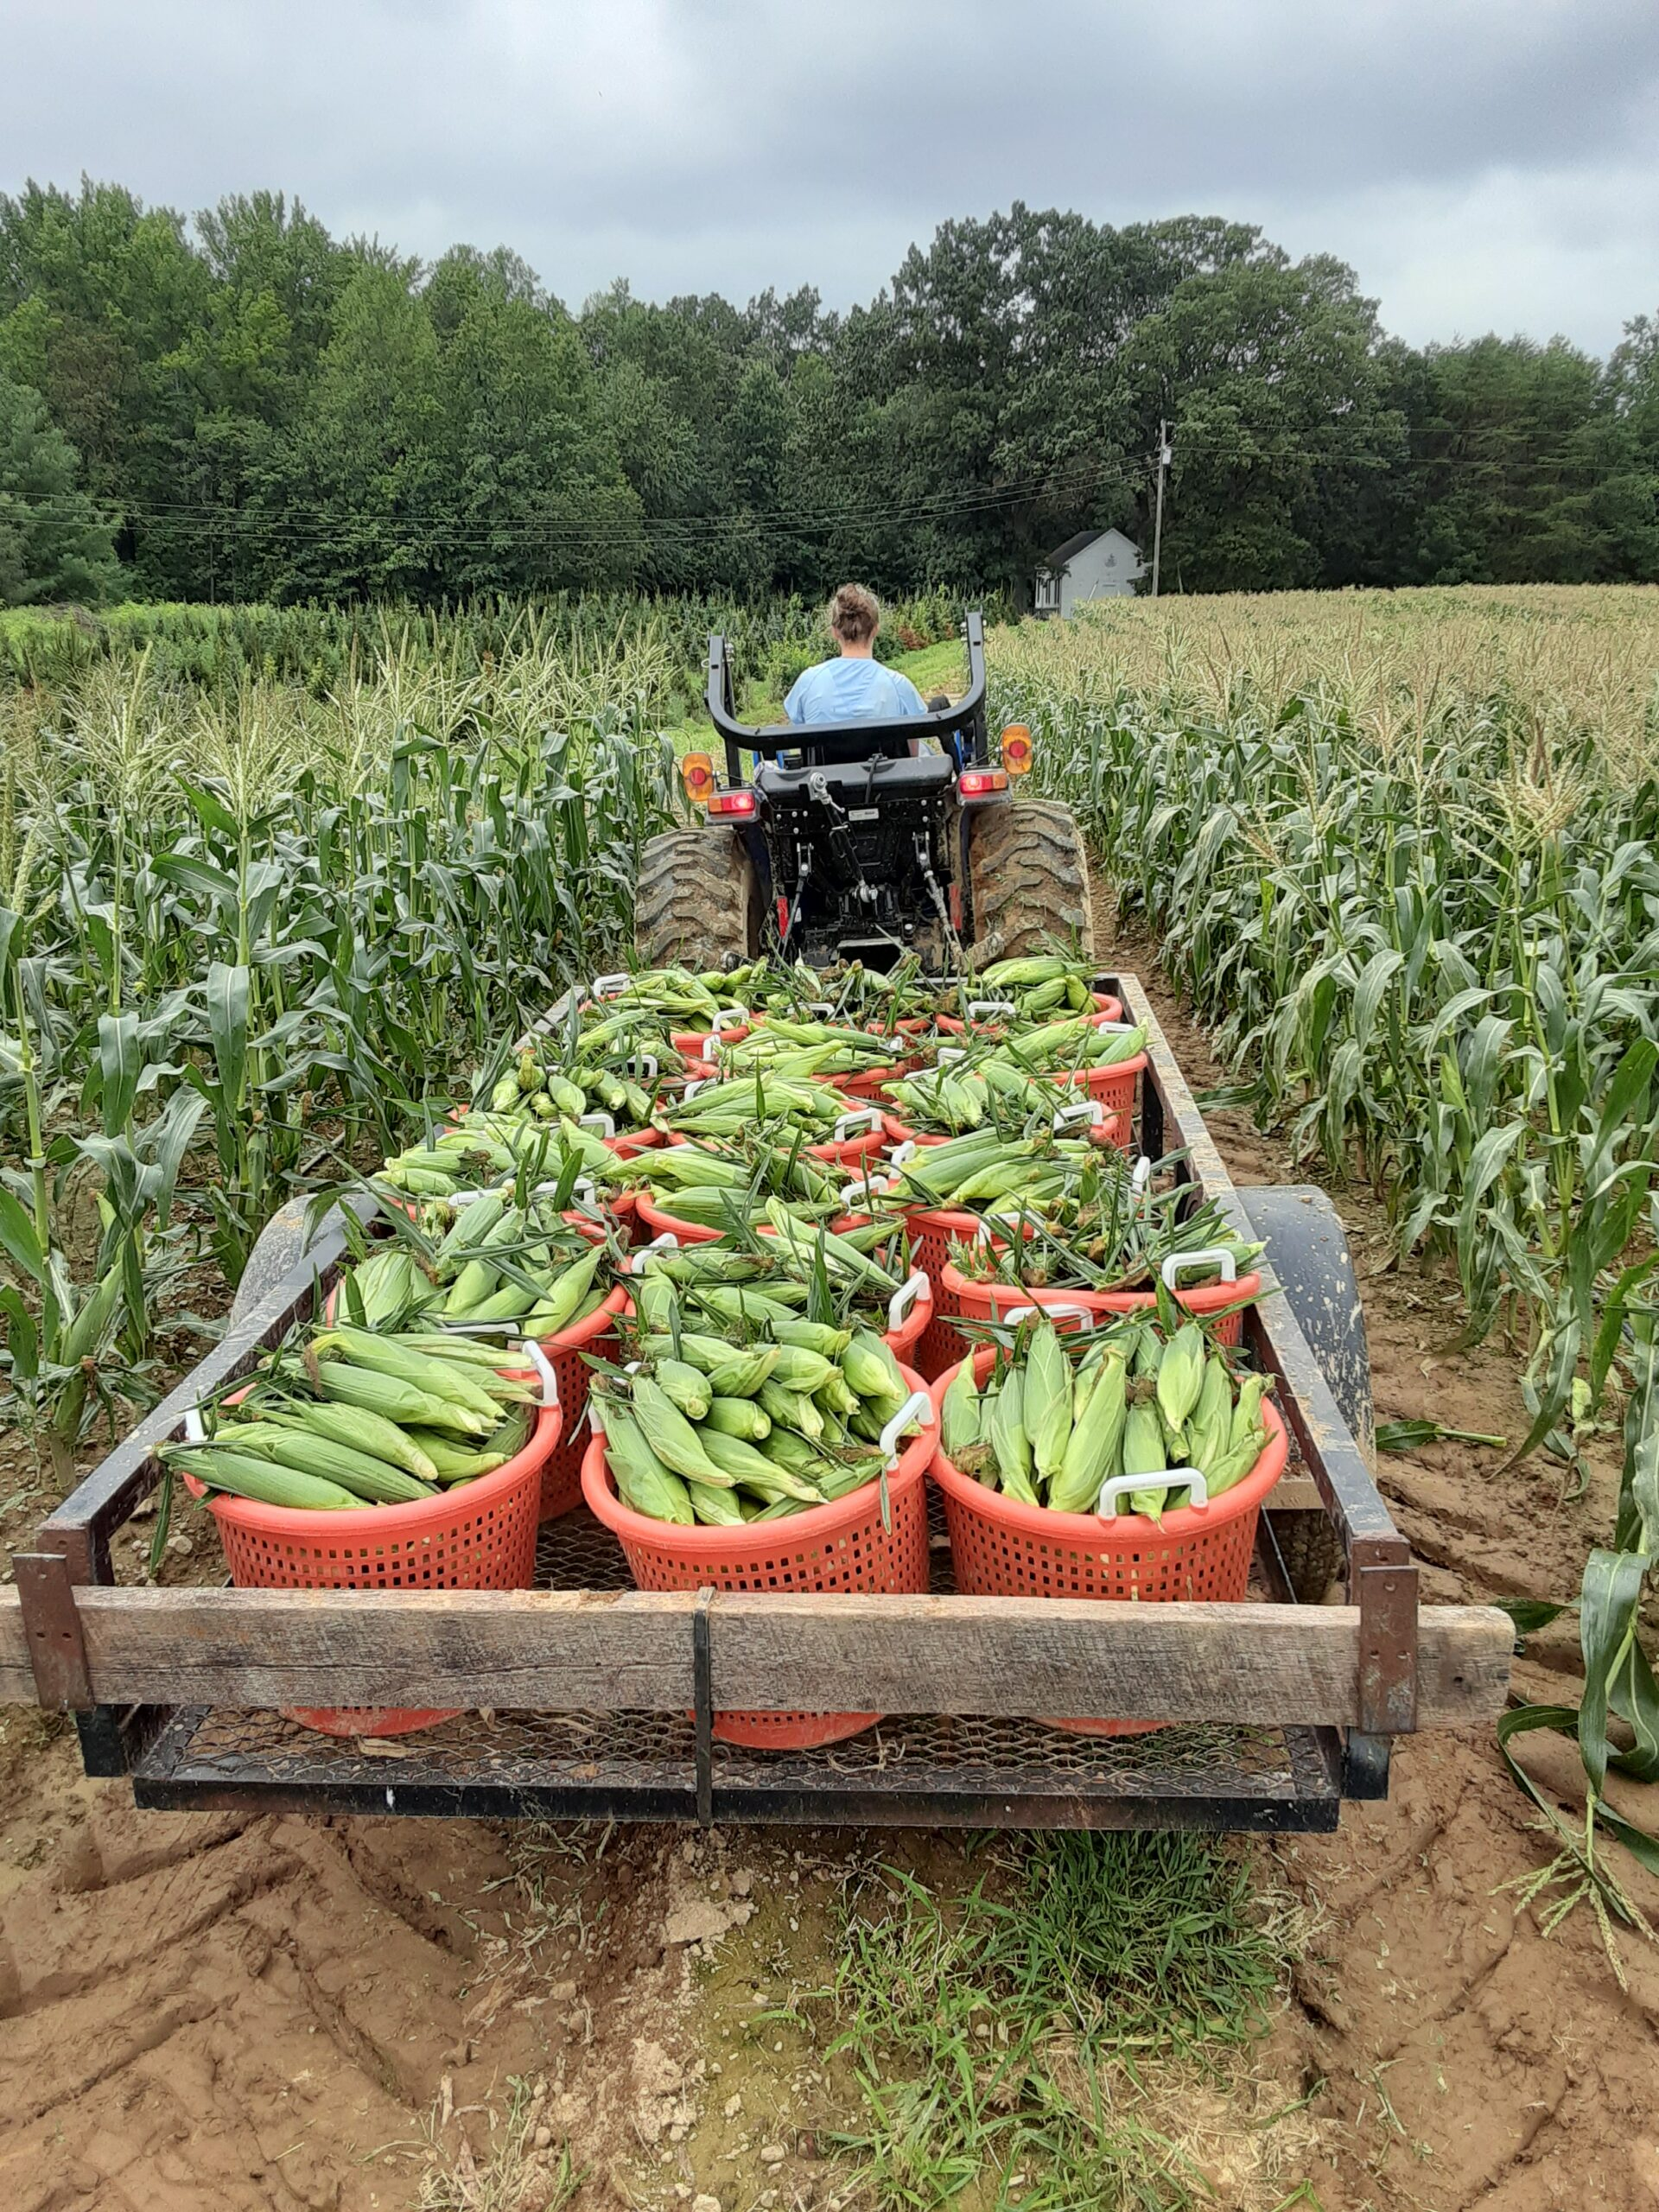 Plenty of Fresh Picked Sweet Corn!  Tomatoes are almost done for the year.  We will pick again next week.